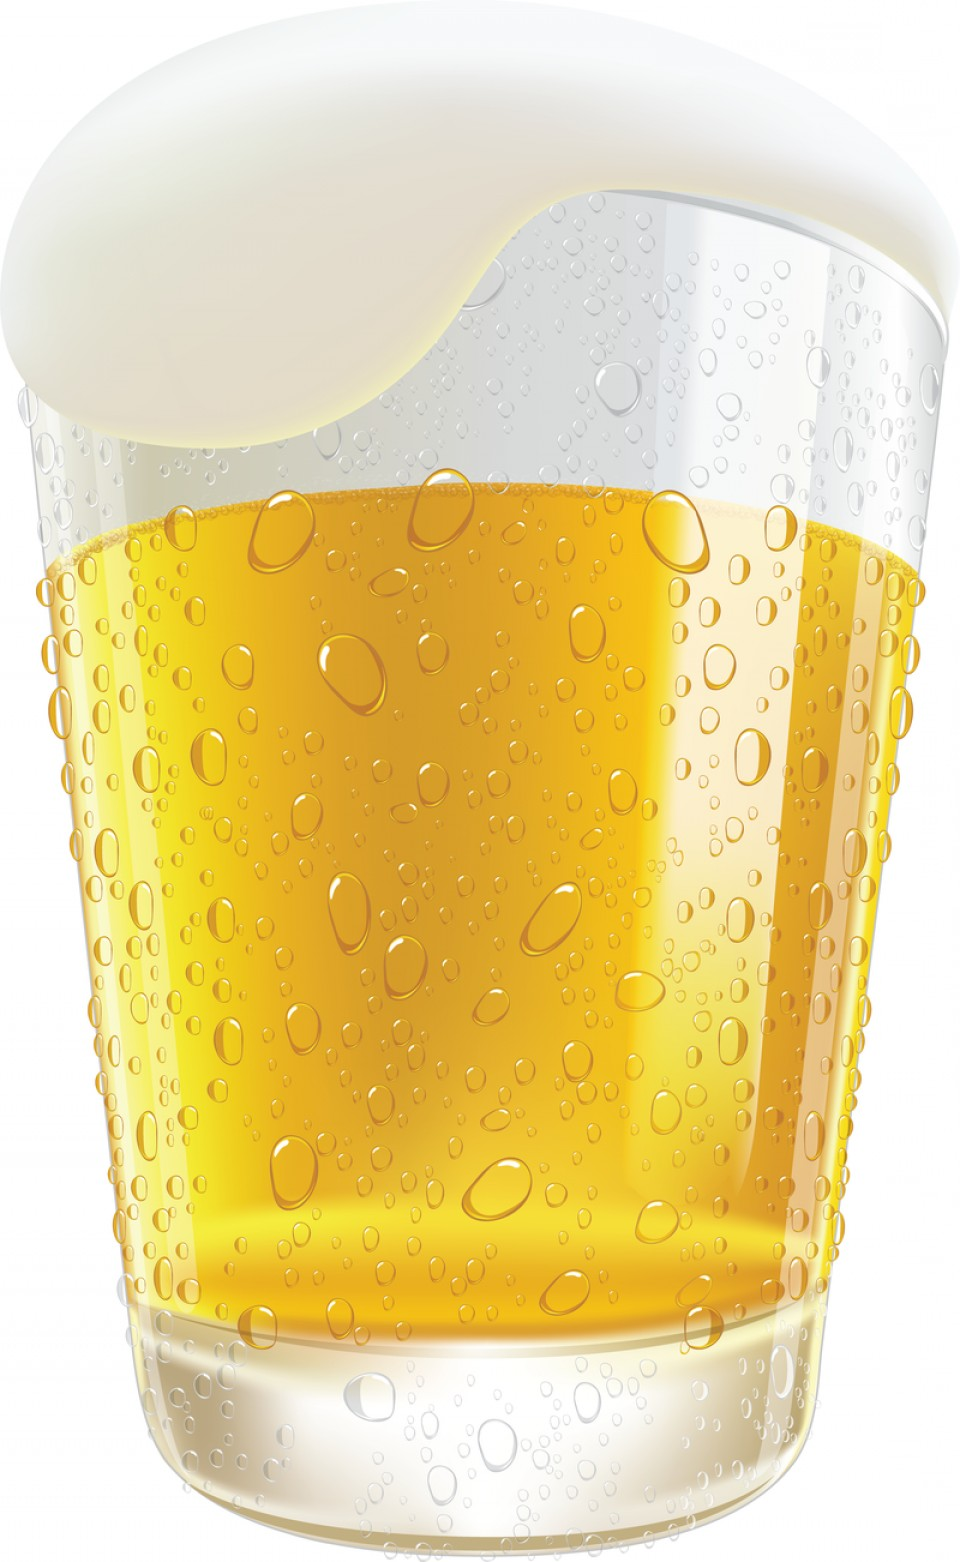 960x1562 Lifelike Beer Glasses And Beer Bubbles Vector Graphic Arenawp